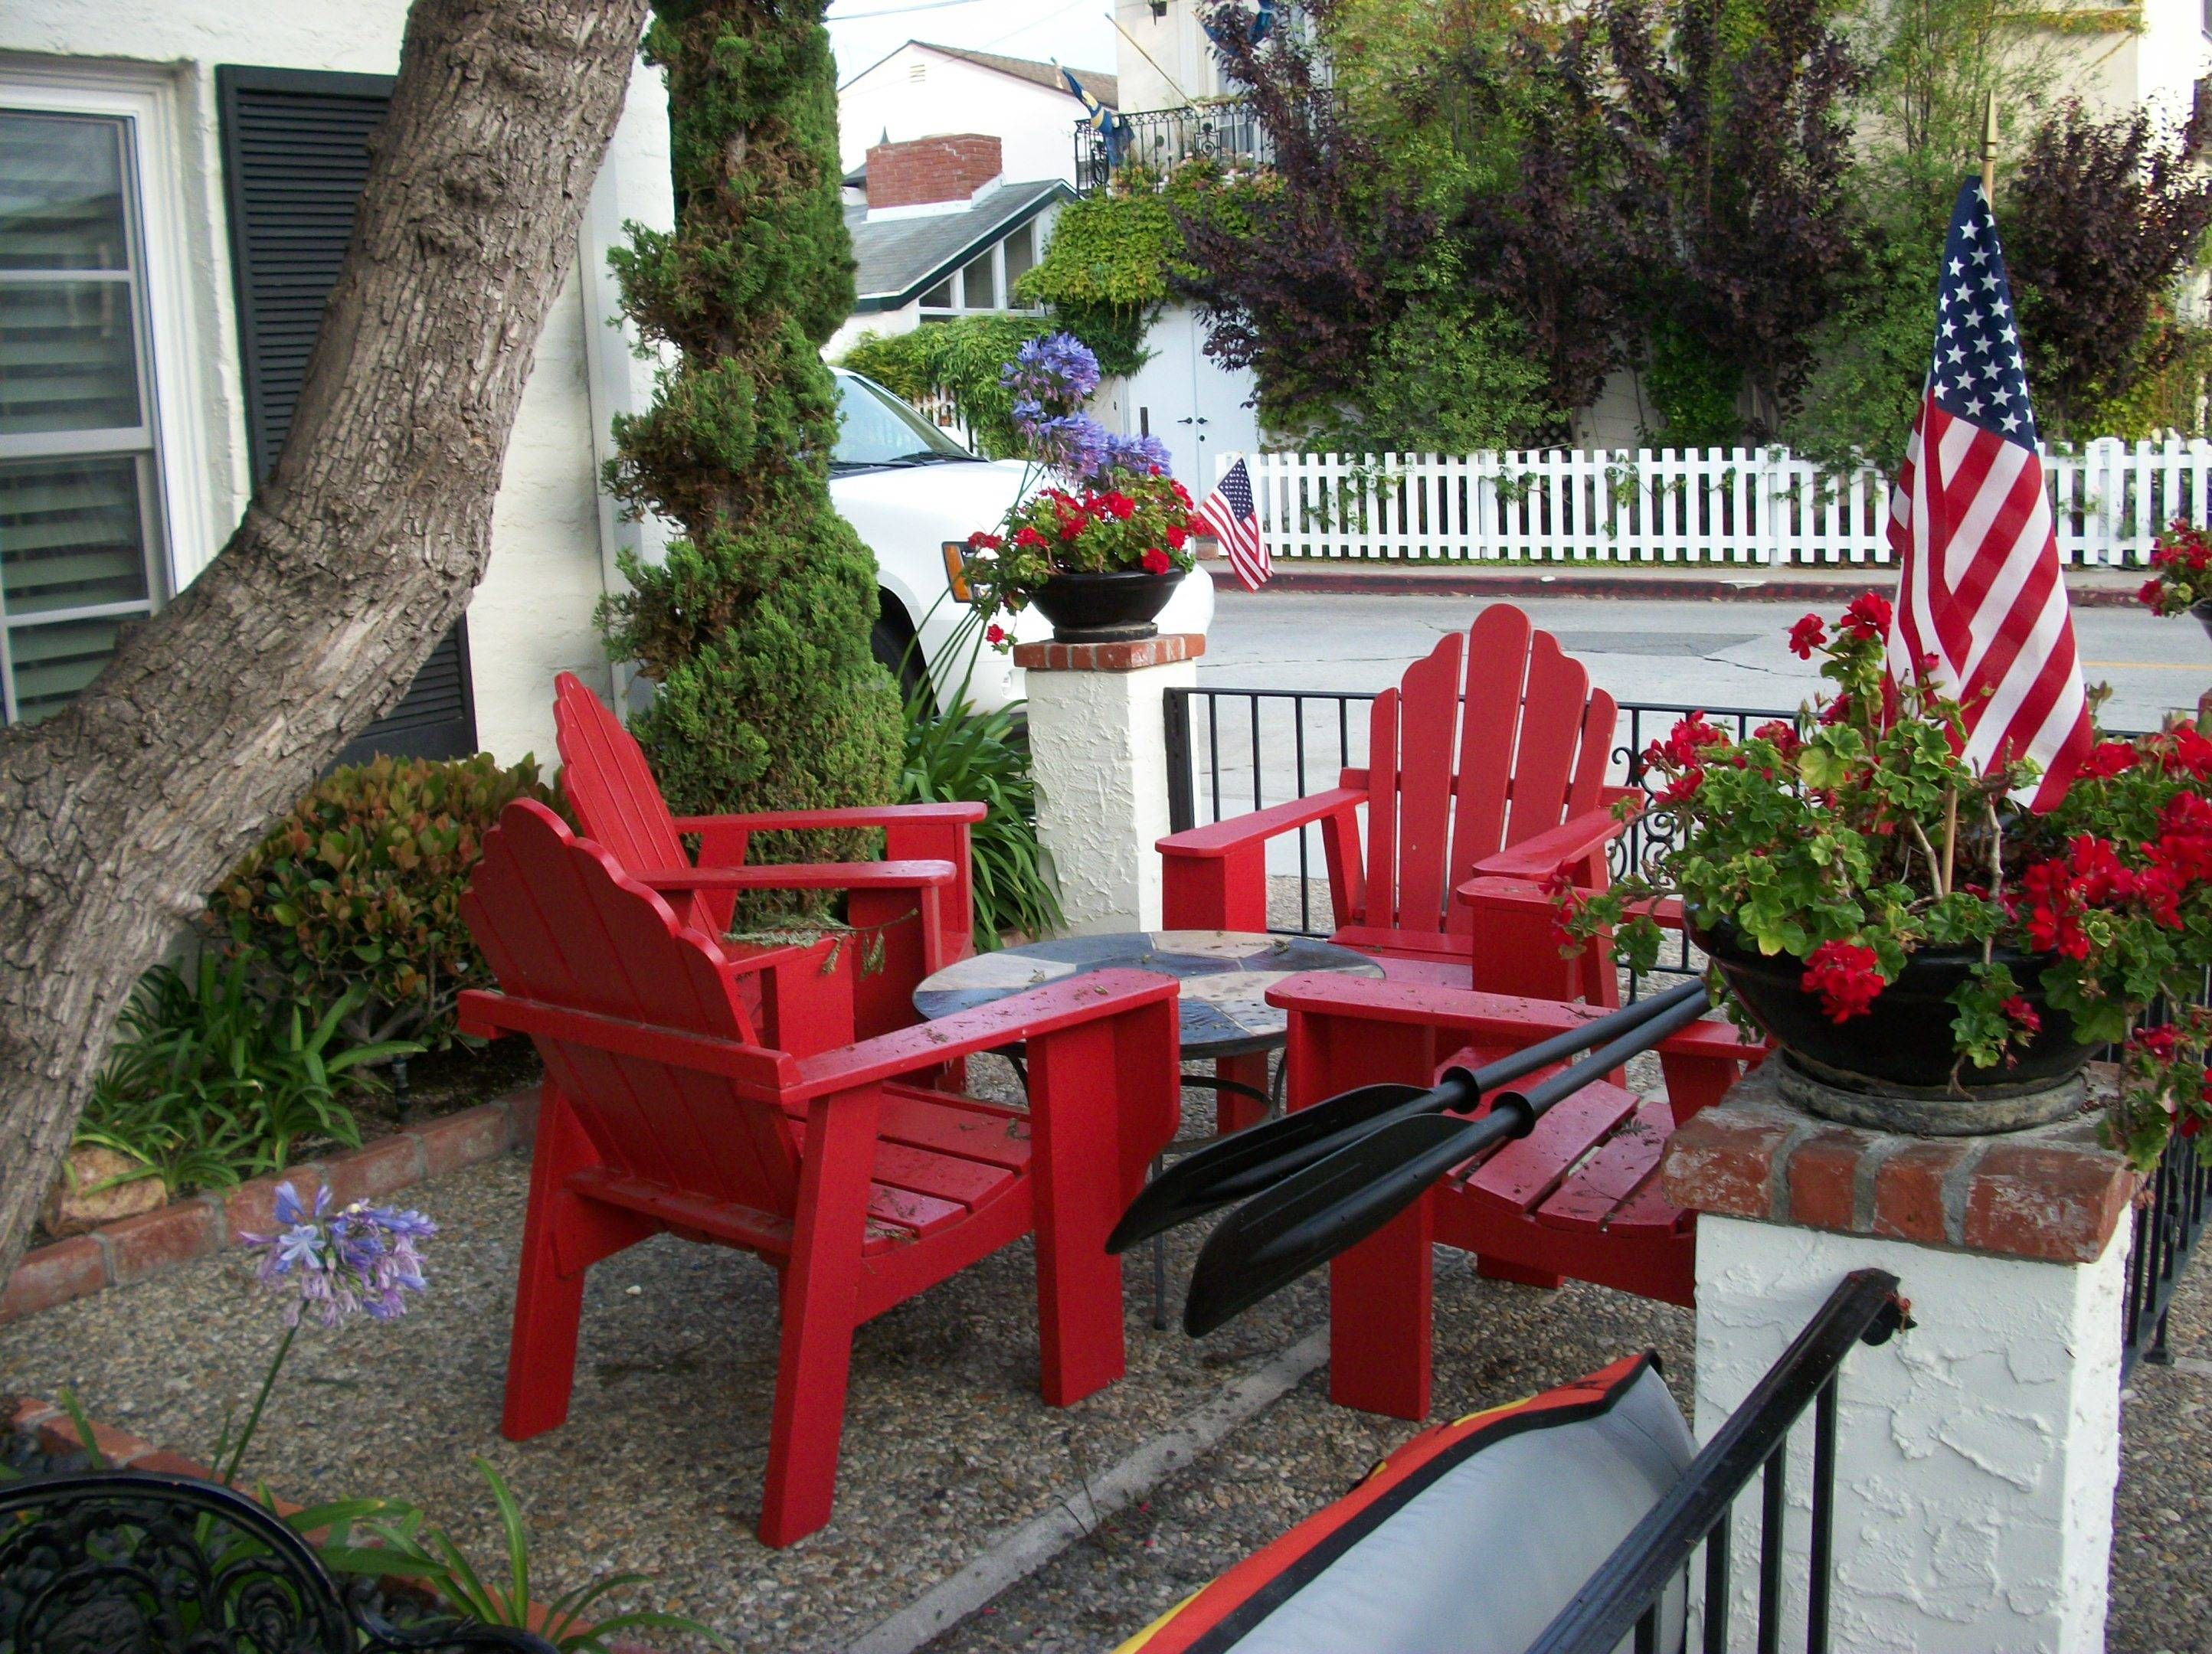 Outdoor Decorating Ideas Outdoor Decorating Ideas For The 4Th Of July  Porch Outdoors And